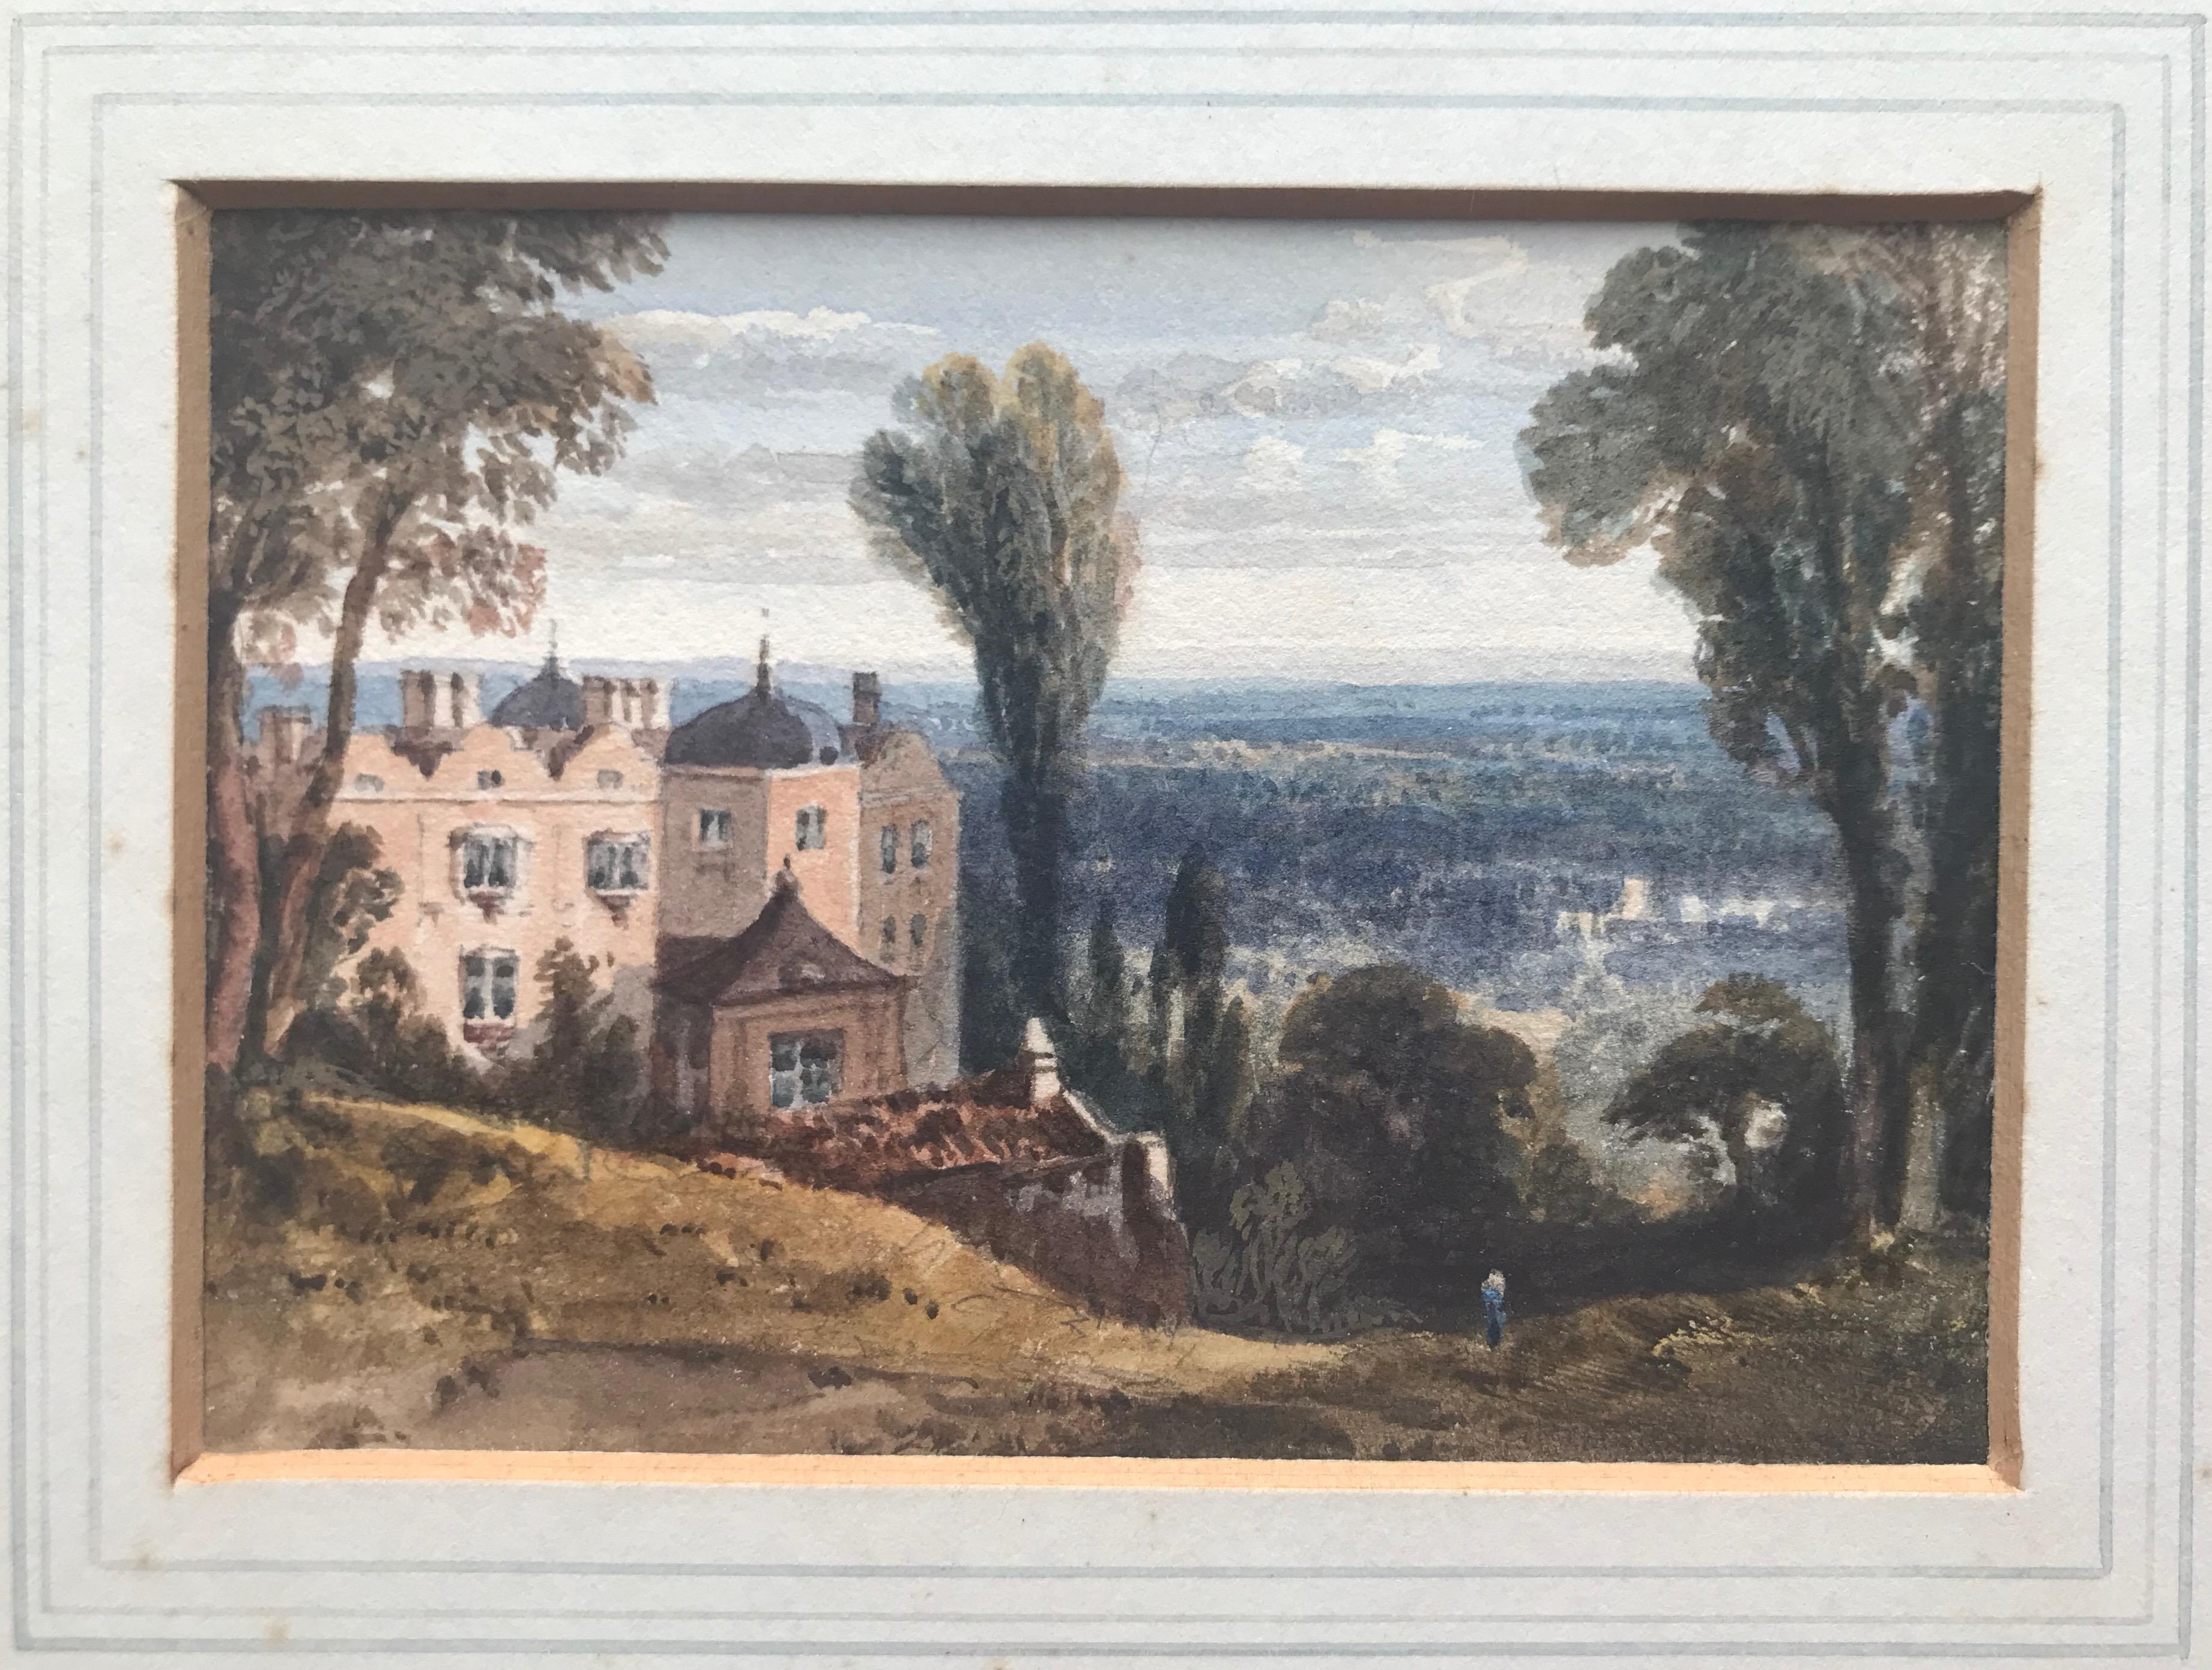 William Crouch, View of a country house, Yalding Downs, Kent